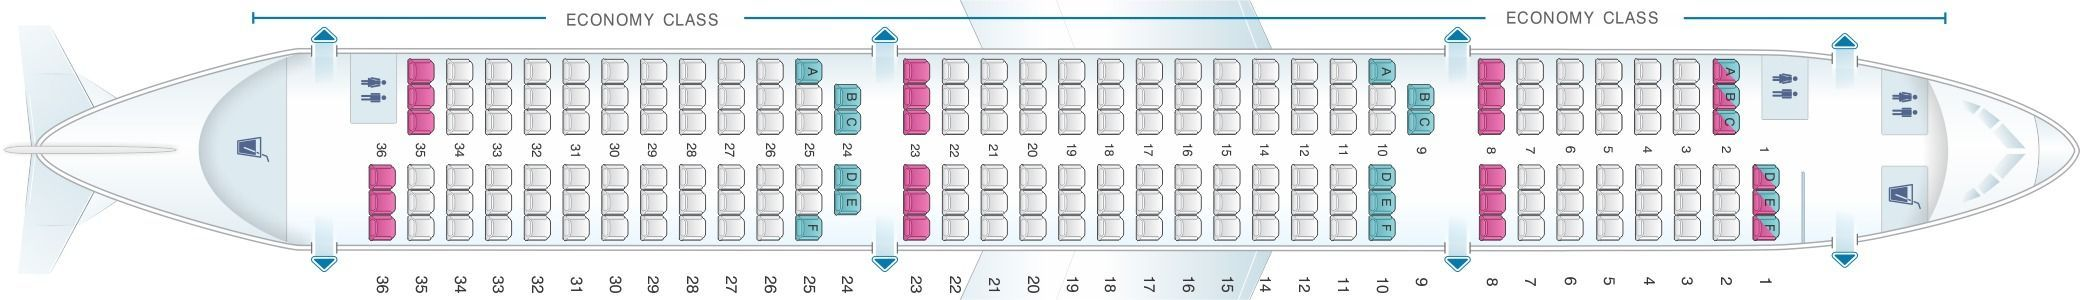 Seat Map And Seating Chart Airbus A321 200 Scandinavian Airlines Sas Sas Fleet Airbus A321 200 Details And Pictures Scandinavian Fleet Sas Airlines Airlines